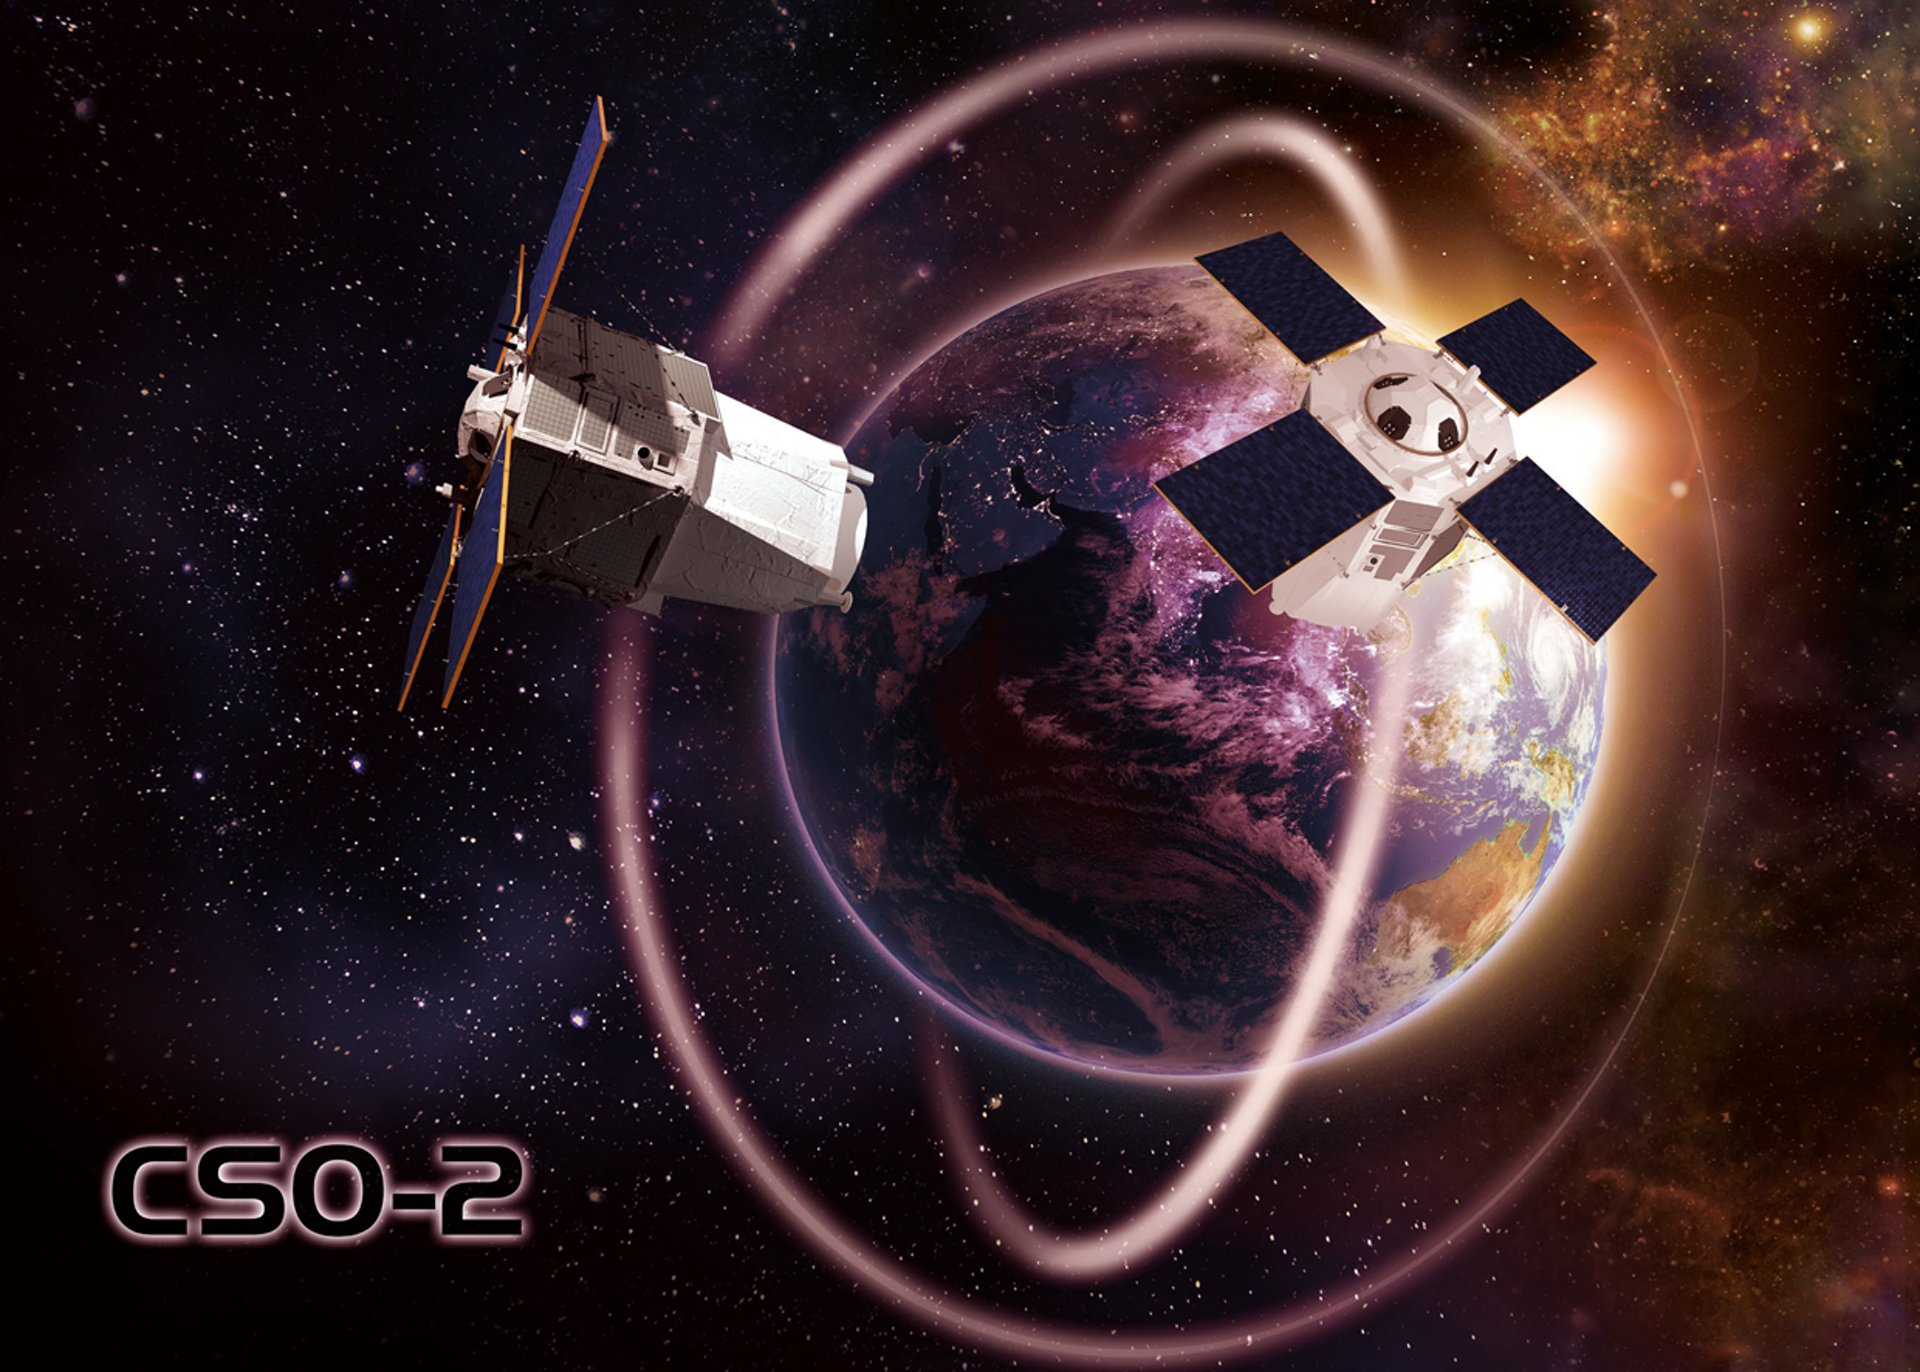 CSO-2 is the second of the three-satellite CSO constellation, which will provide extremely high resolution geo information intelligence to the French Armed Forces and to its partners in the frame of the MUSIS cooperation programme (Multinational Space-based Imaging System for surveillance, reconnaissance and observation).